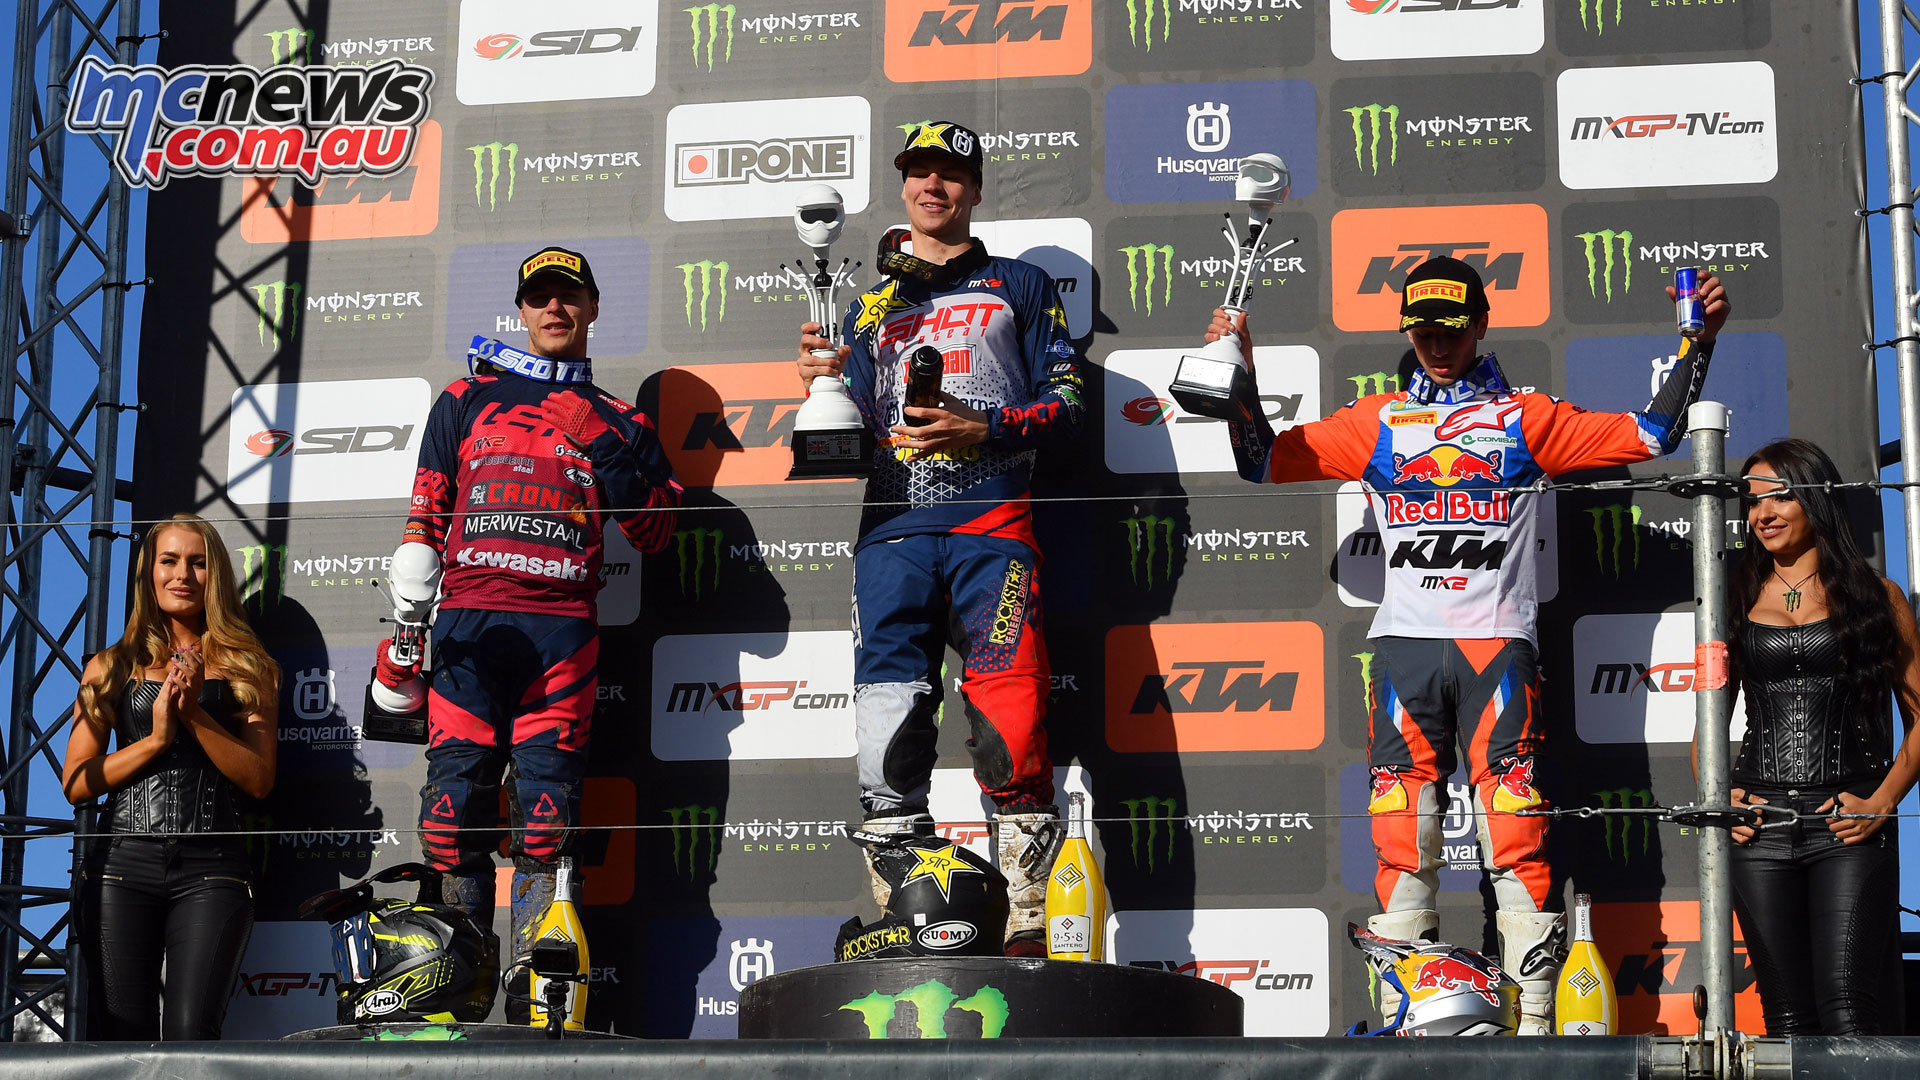 MXGP Rnd Britain mx olsen podium